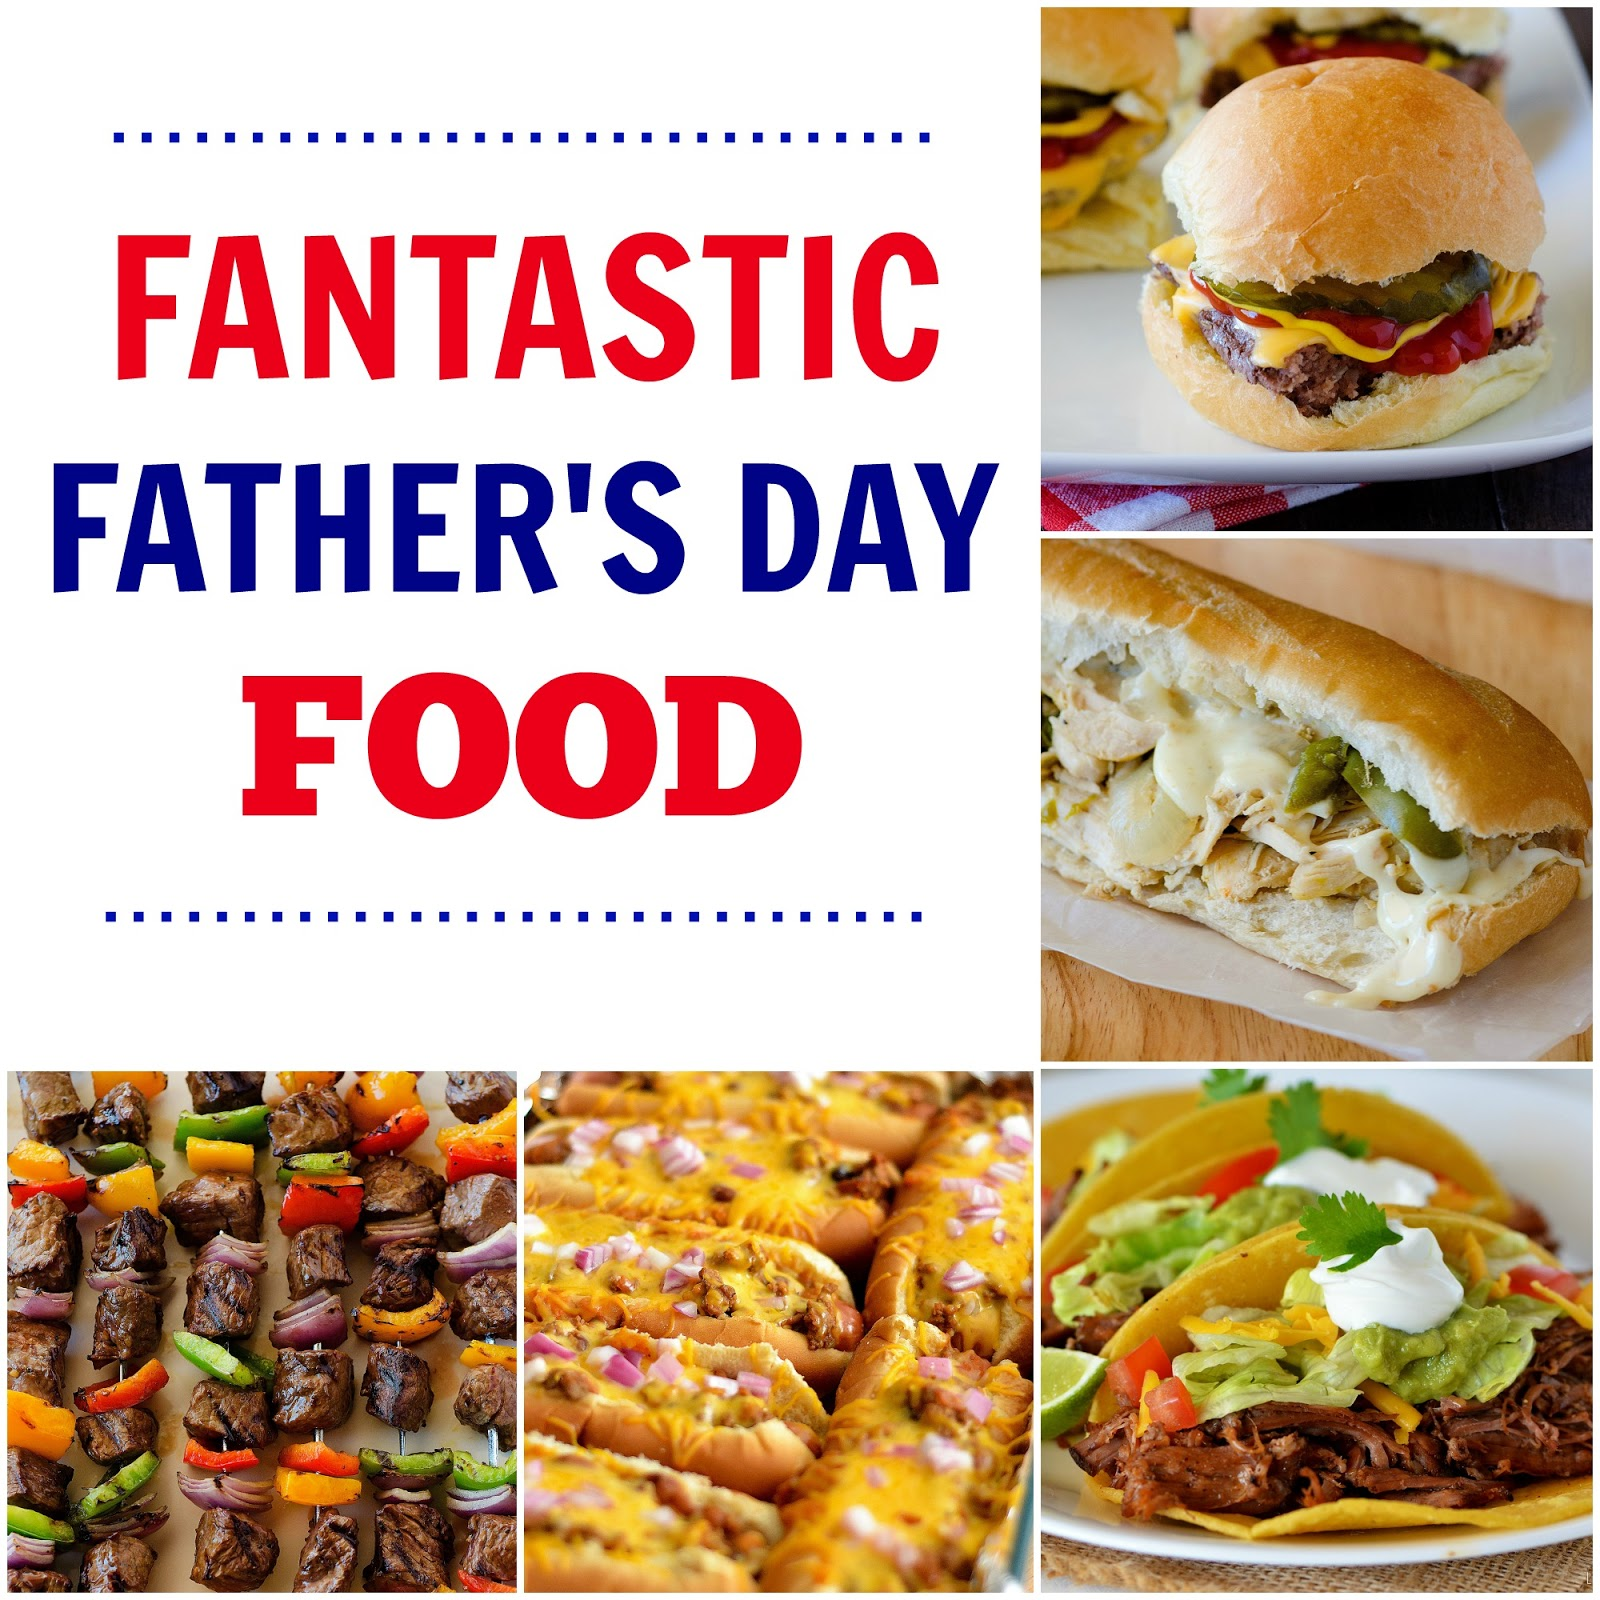 Man food recipe round up fathers day edition the country cook below brandie and i have compiled all of the most fantastic food to make on fathers day theyre sure to be happy campers on their special day with any of sciox Image collections